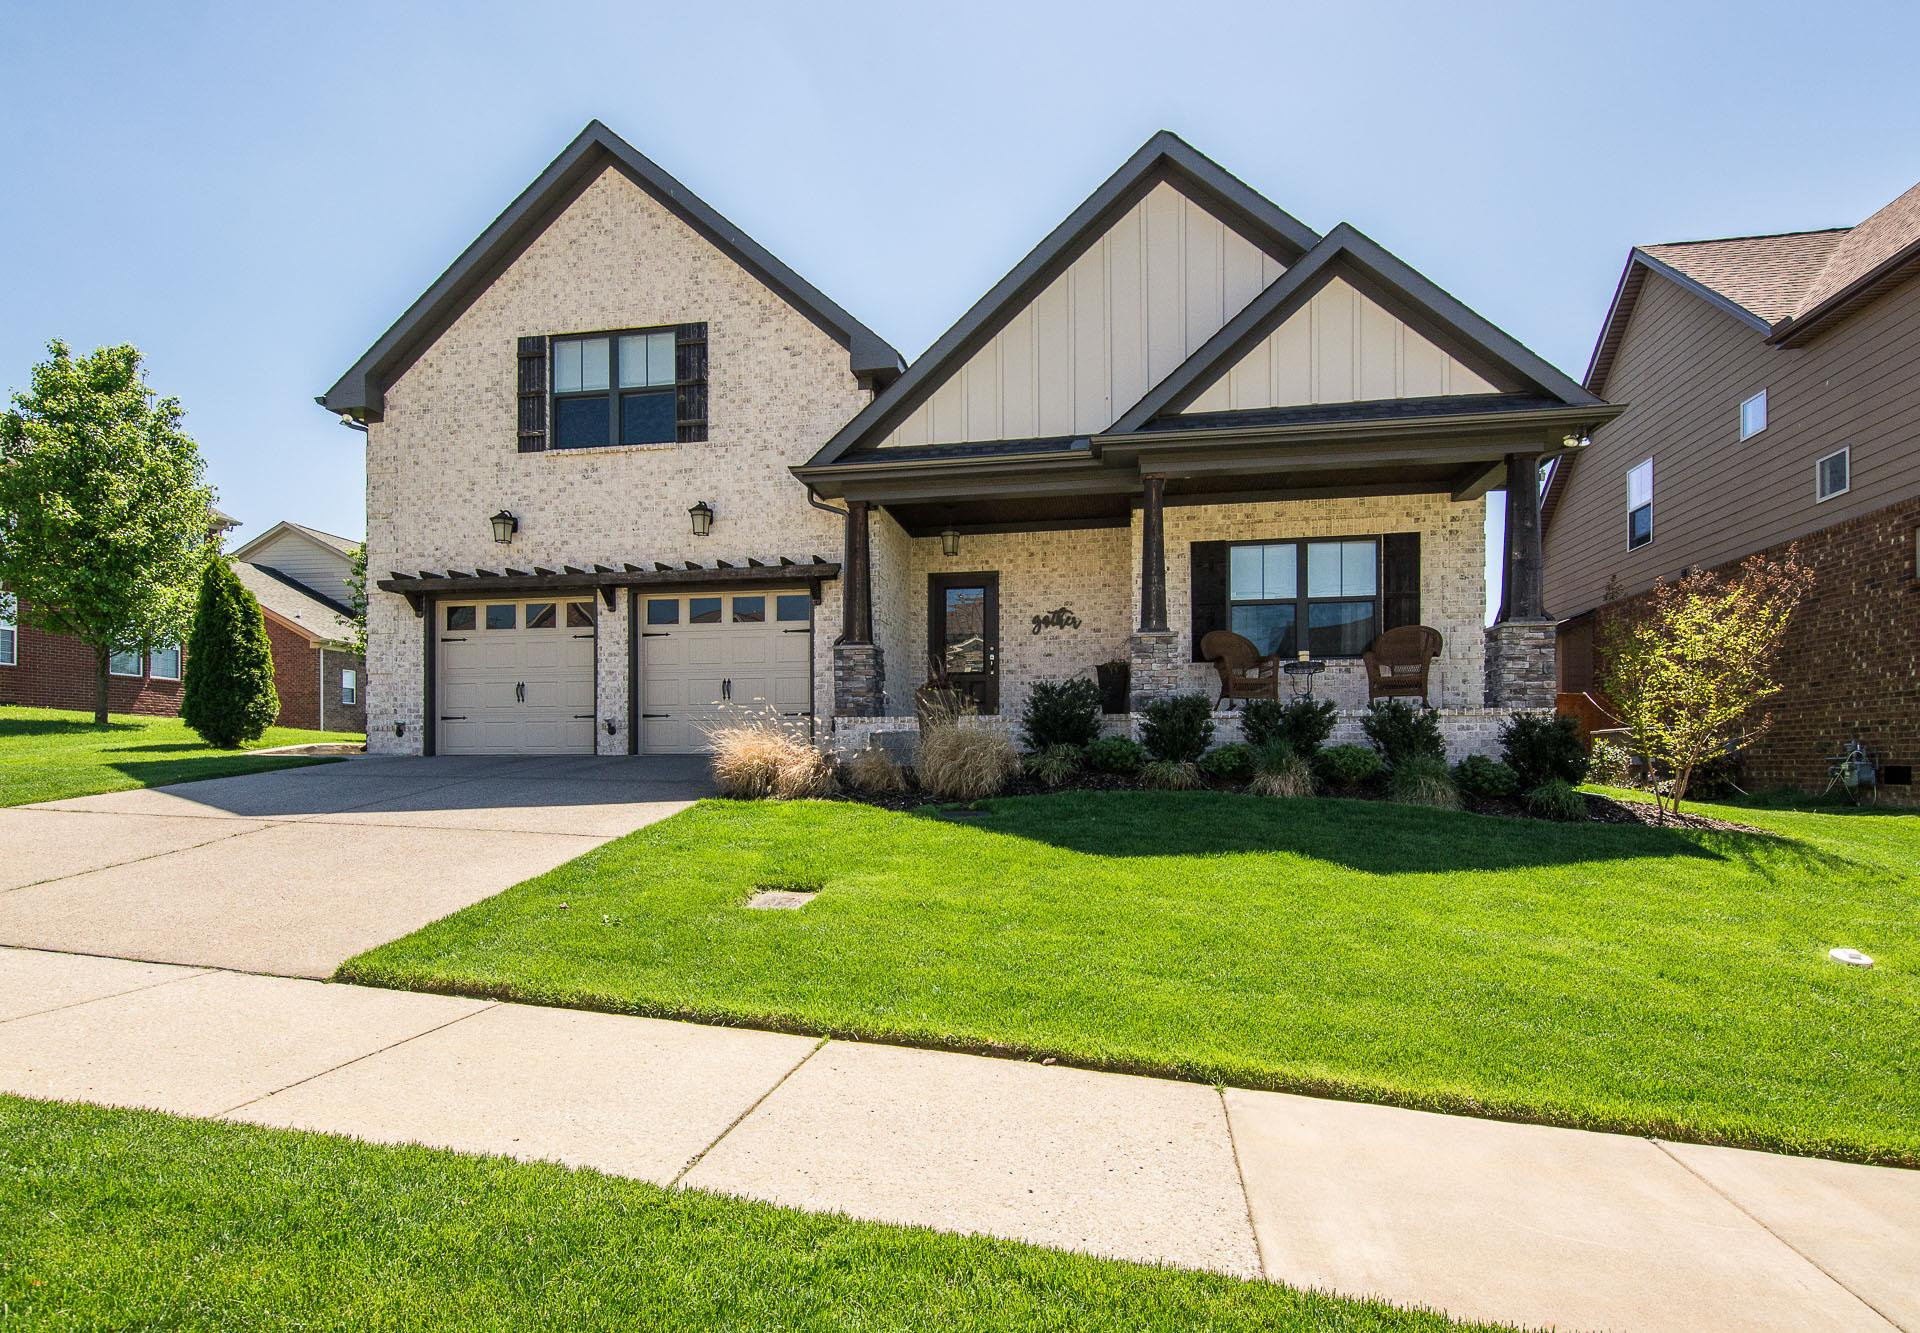 7636 Kemberton Dr , E, Nolensville in Davidson County County, TN 37135 Home for Sale